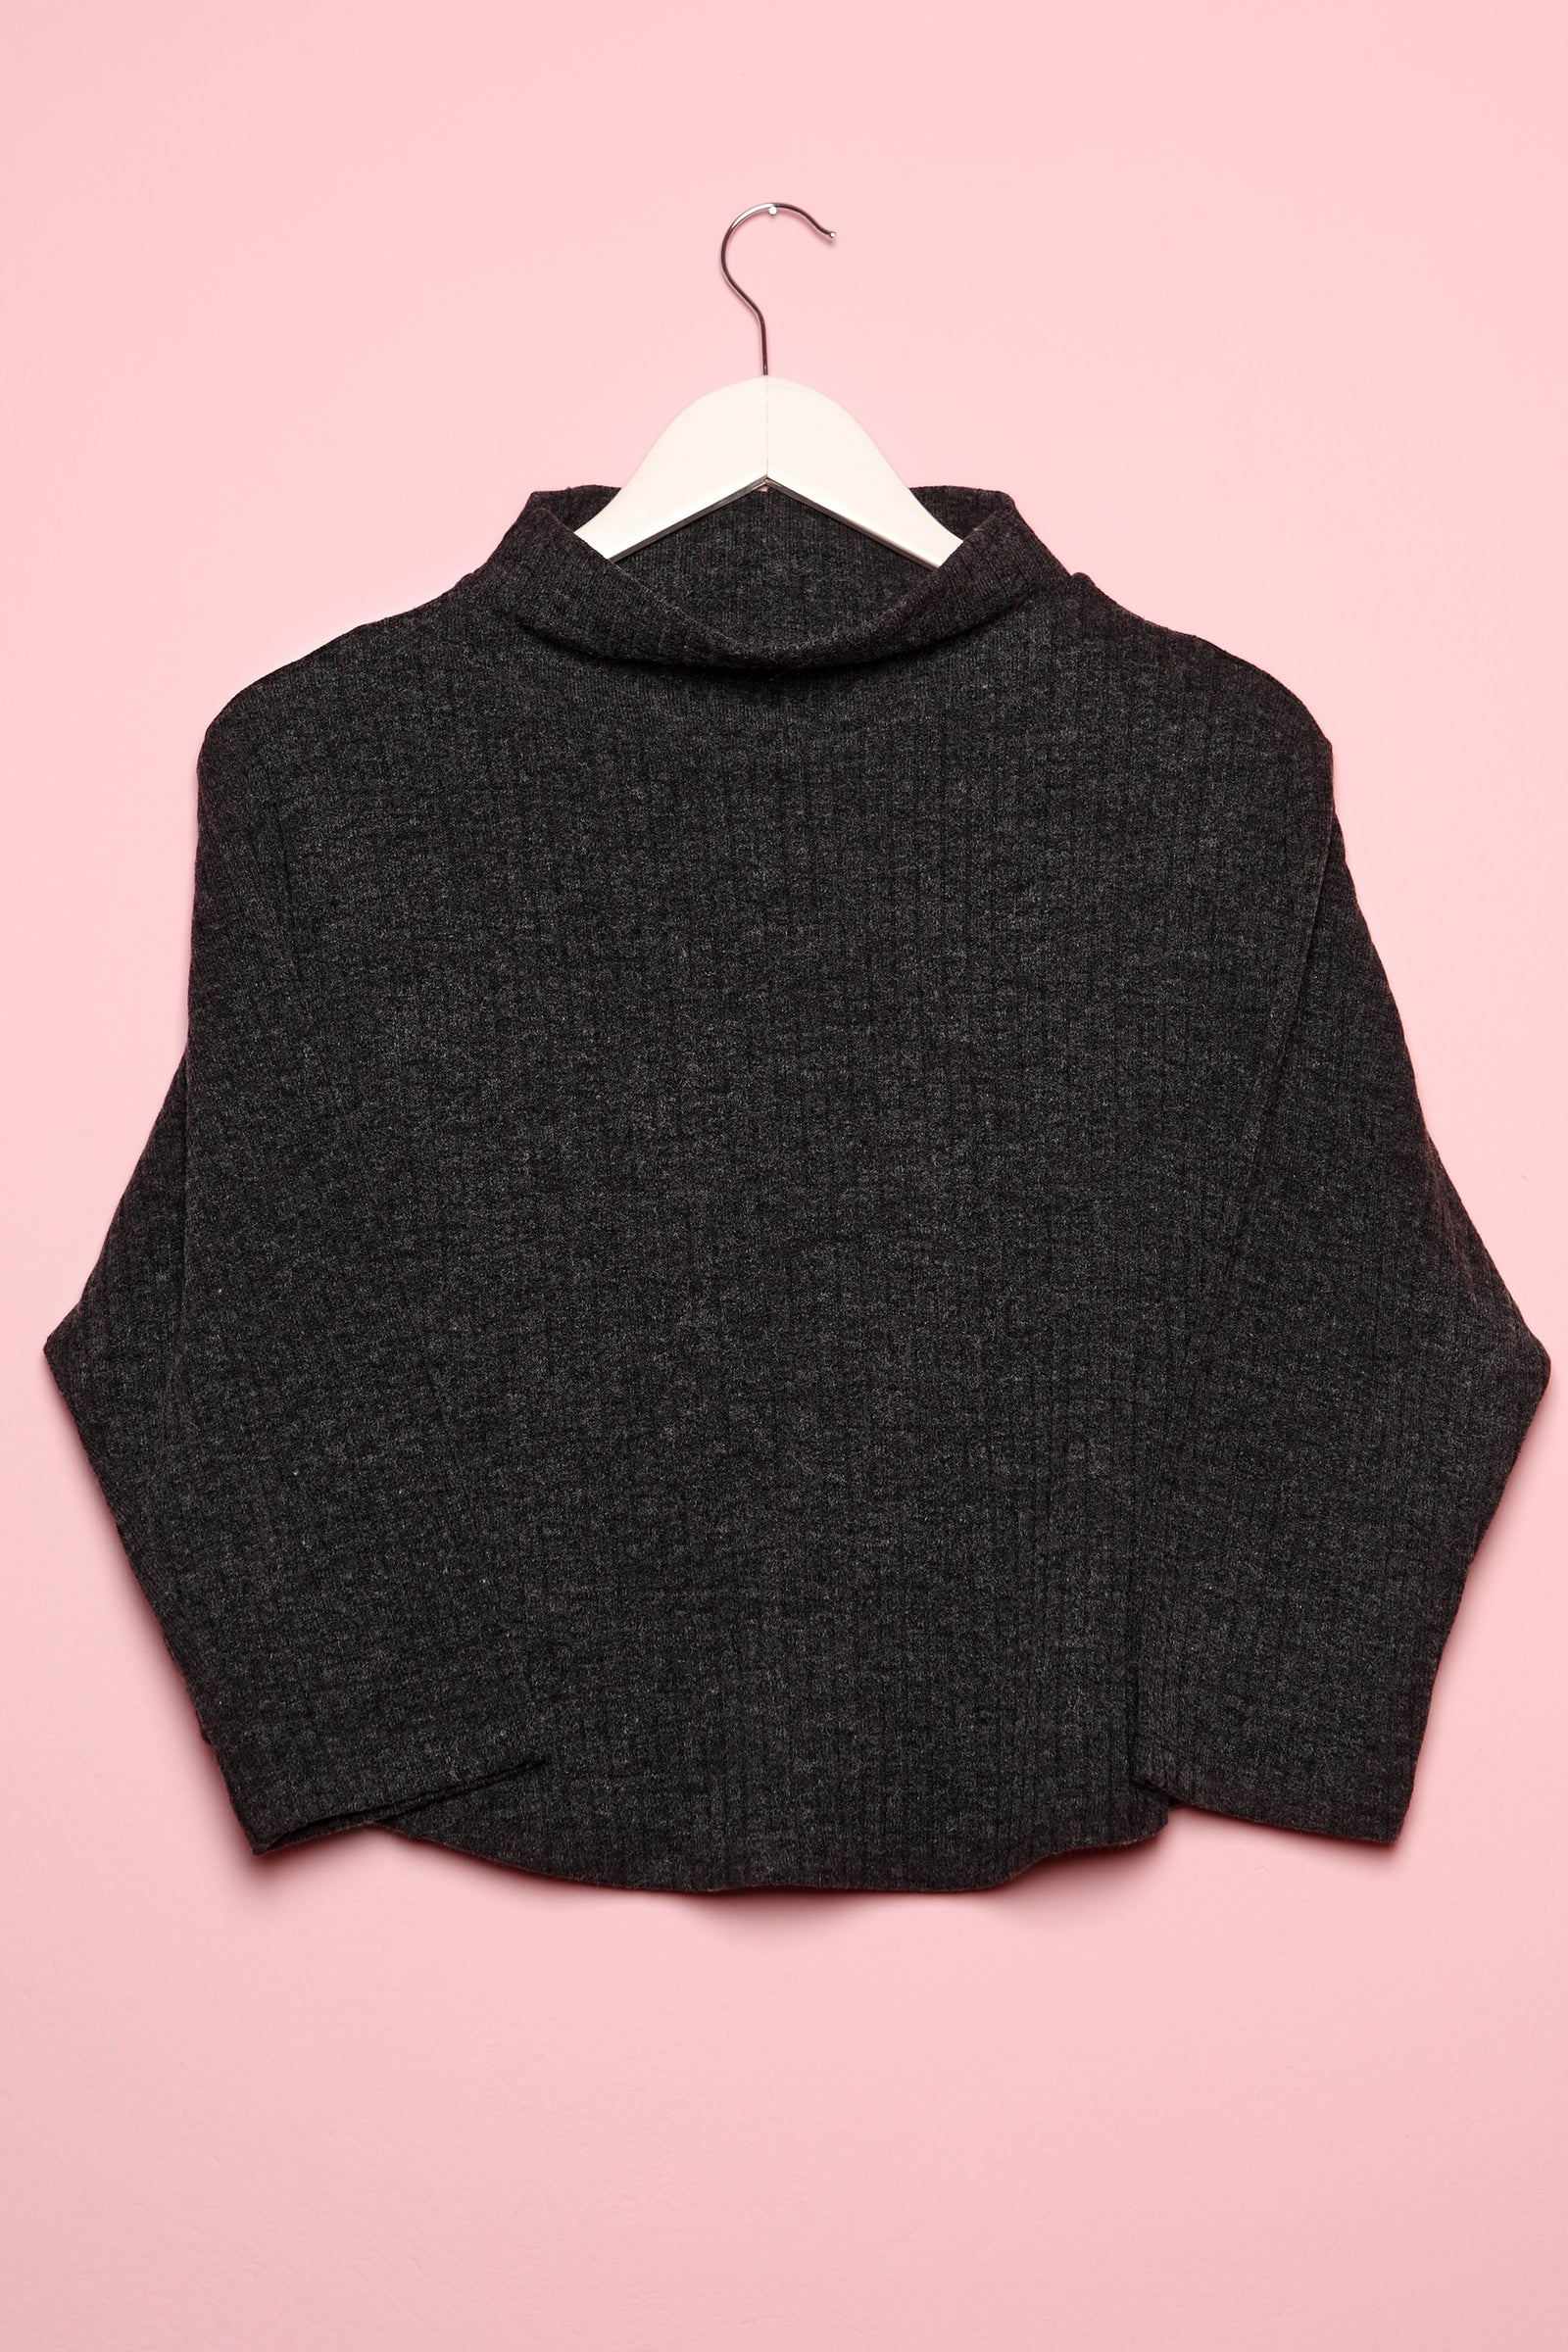 Turtleneck Top Chouchou in Knit